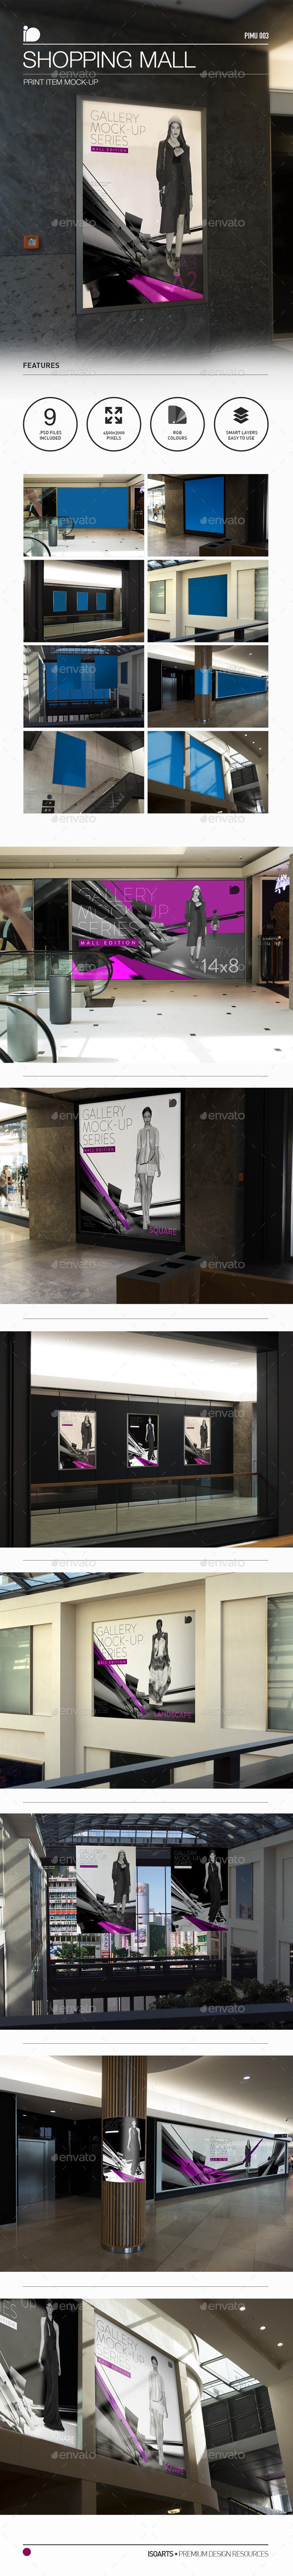 Mock-Up • Shopping Mall - Posters Print